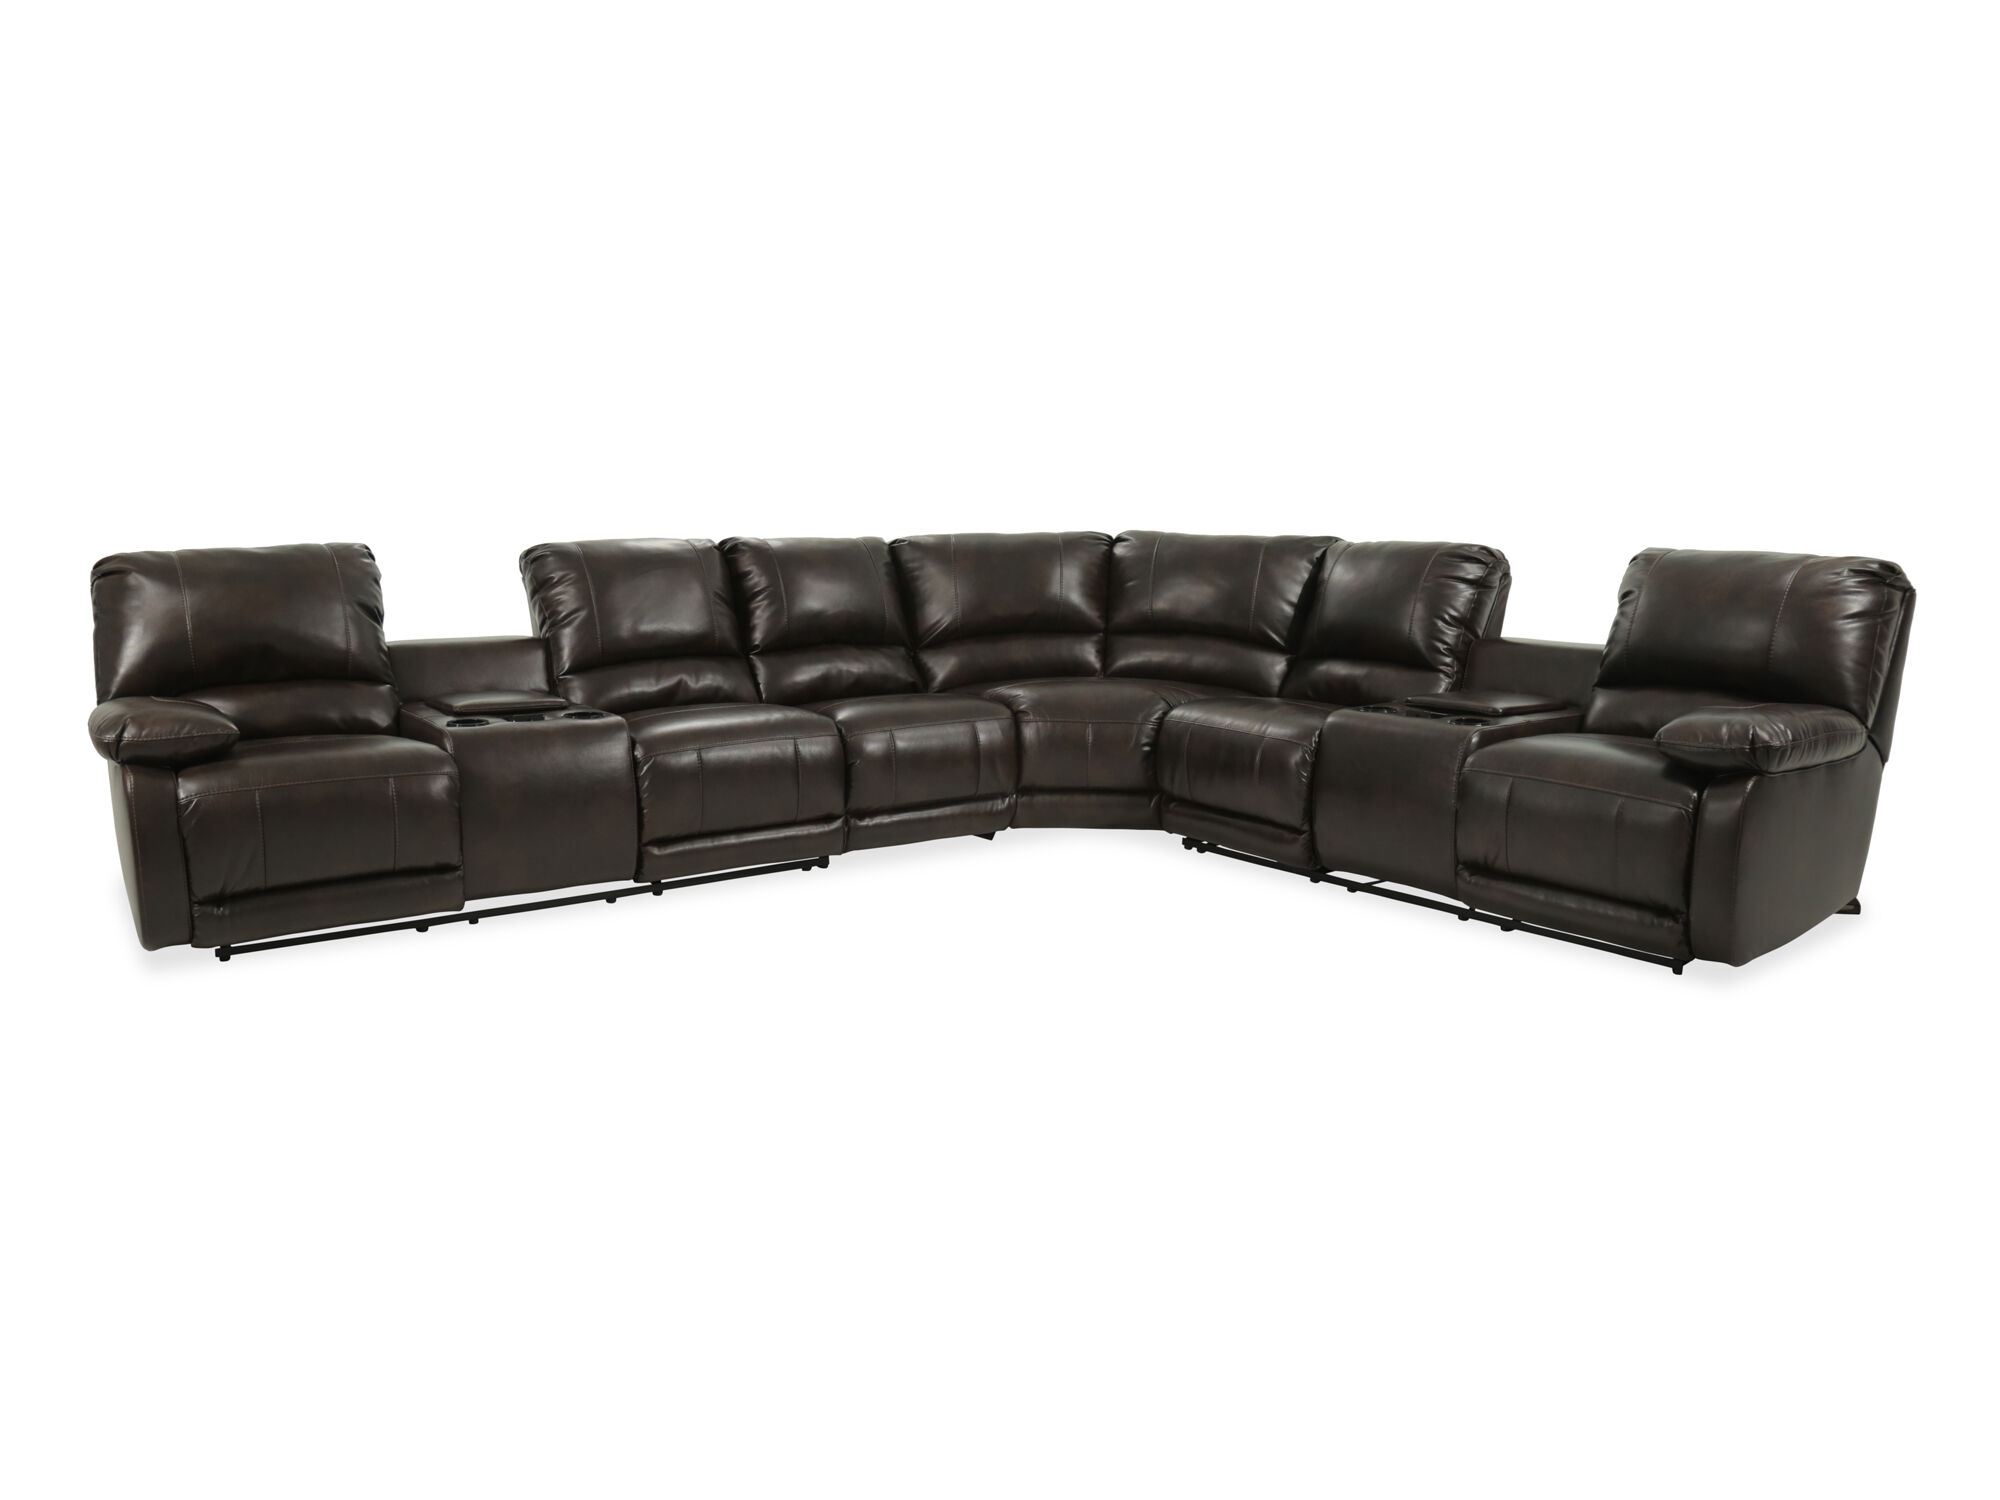 Four Piece Microfiber Sectional In Brown